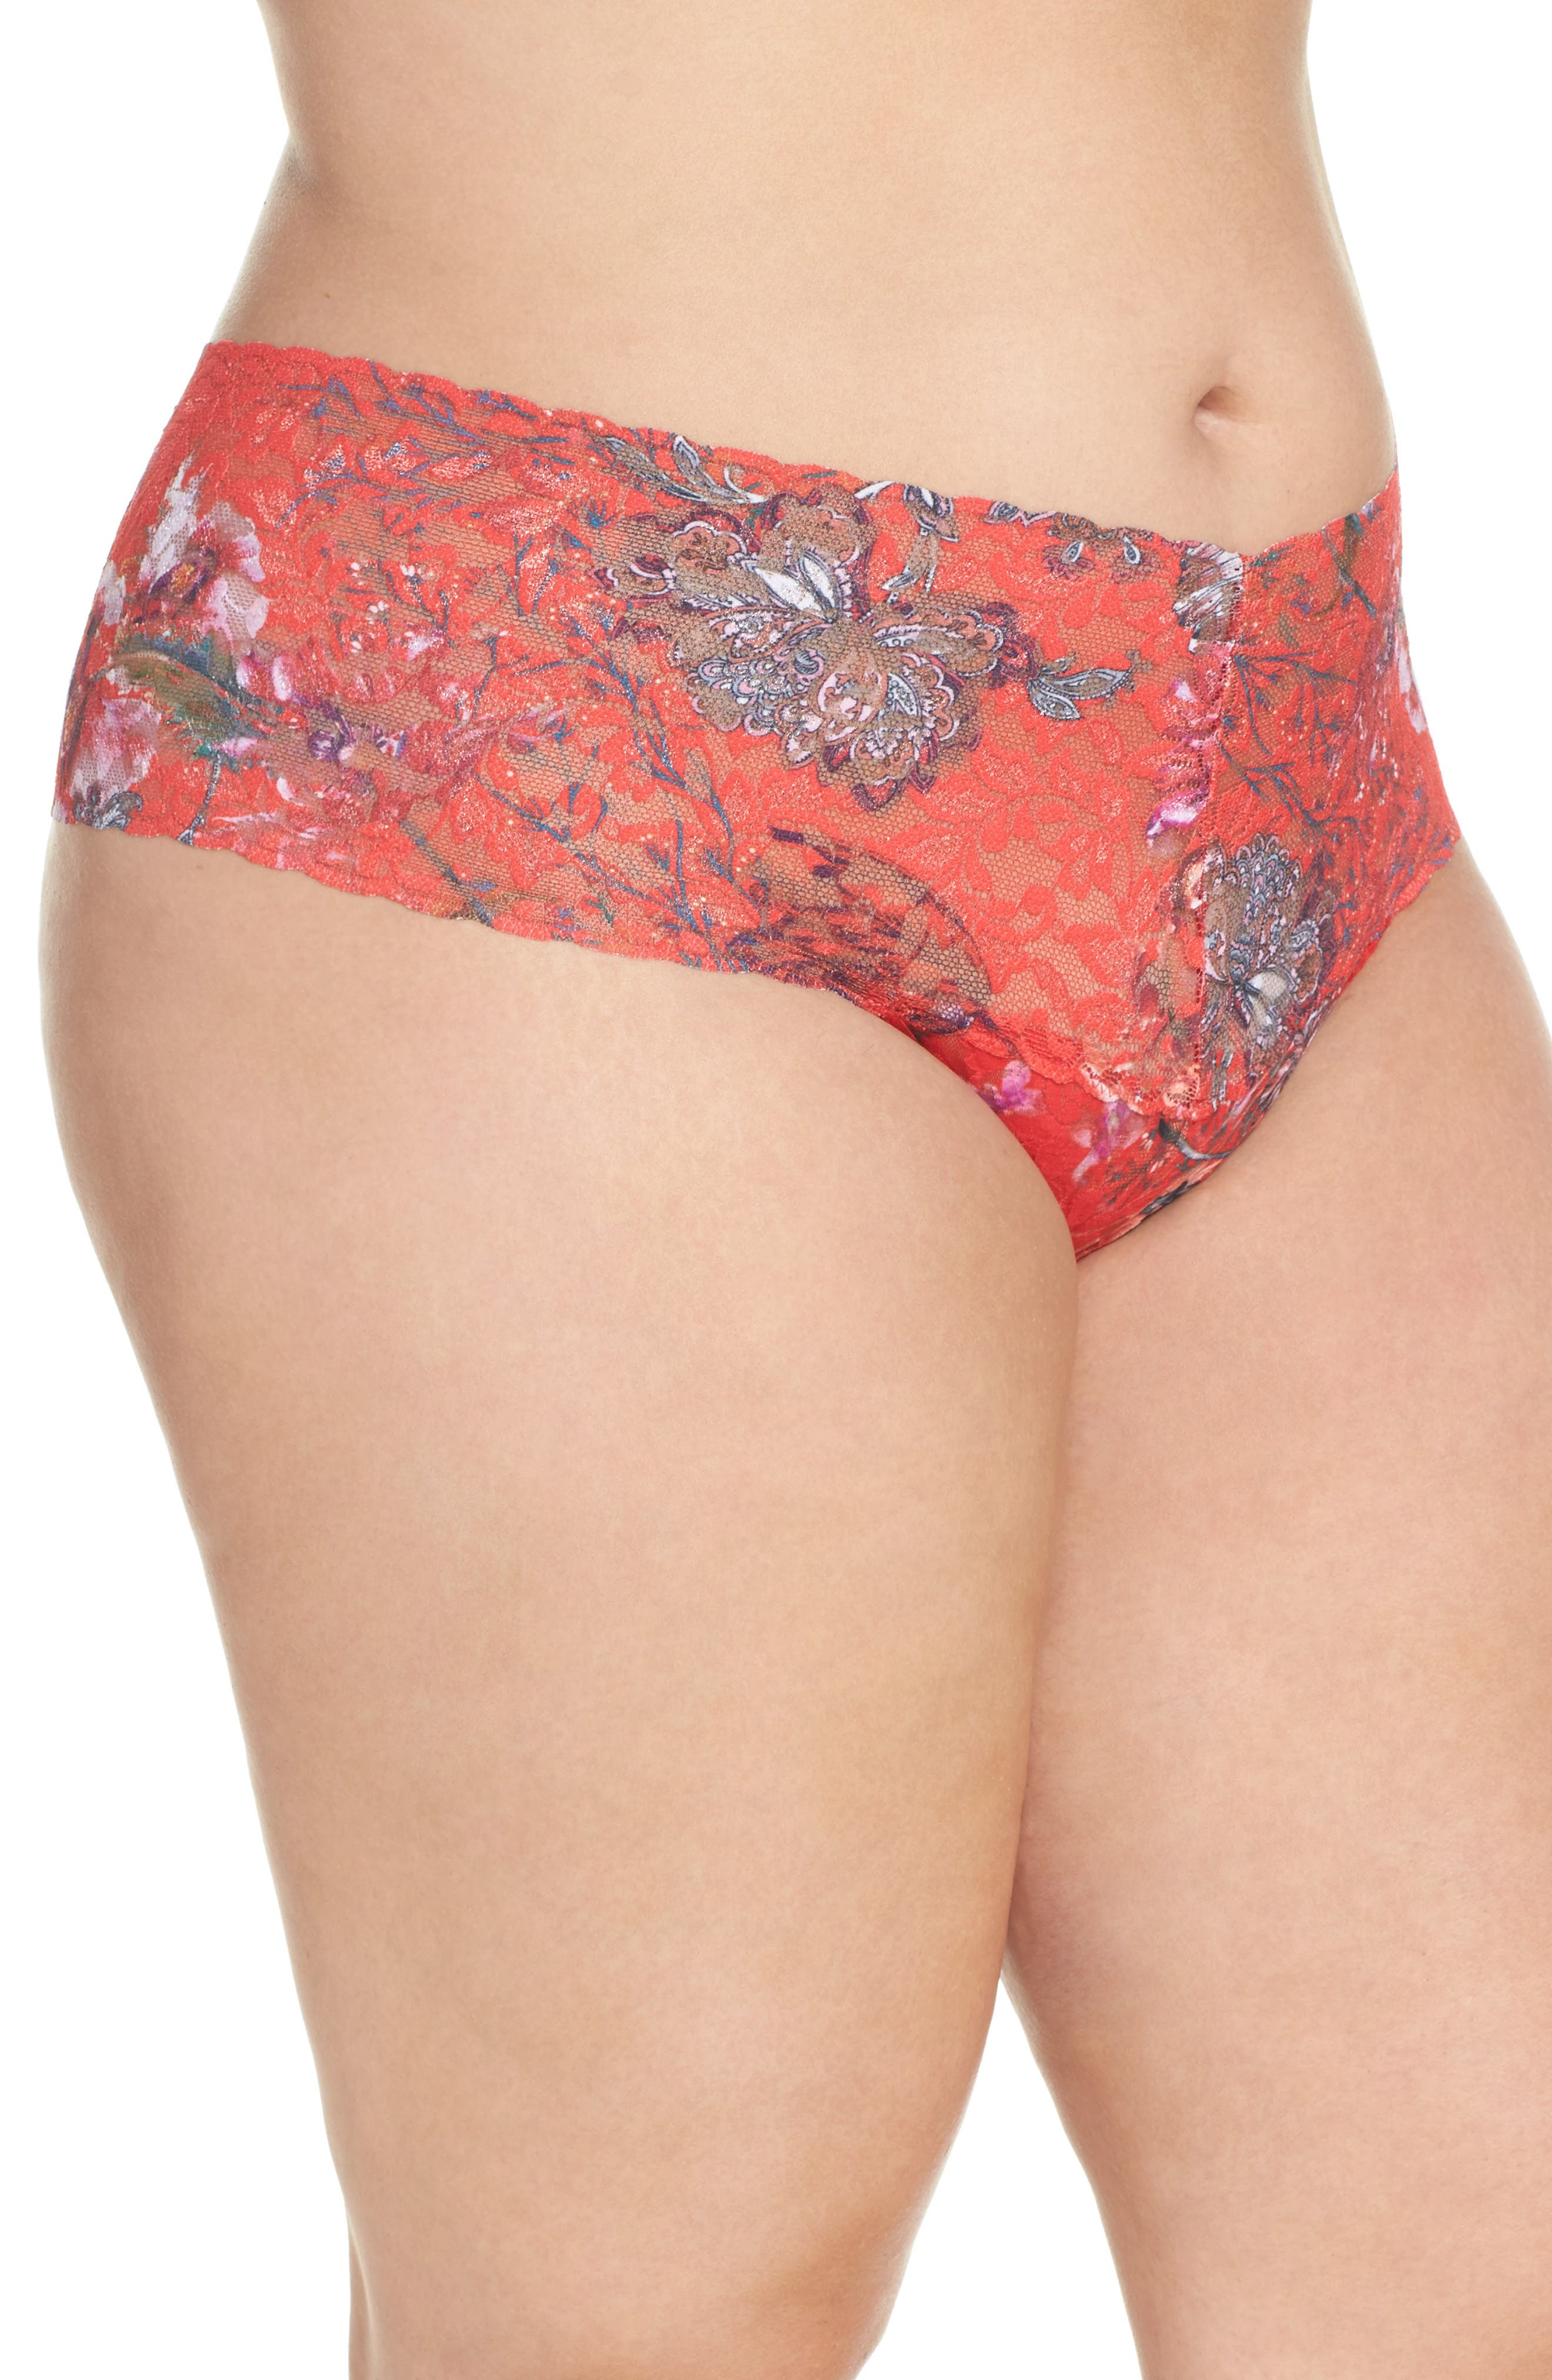 Fiery Floral Thong,                             Alternate thumbnail 3, color,                             600